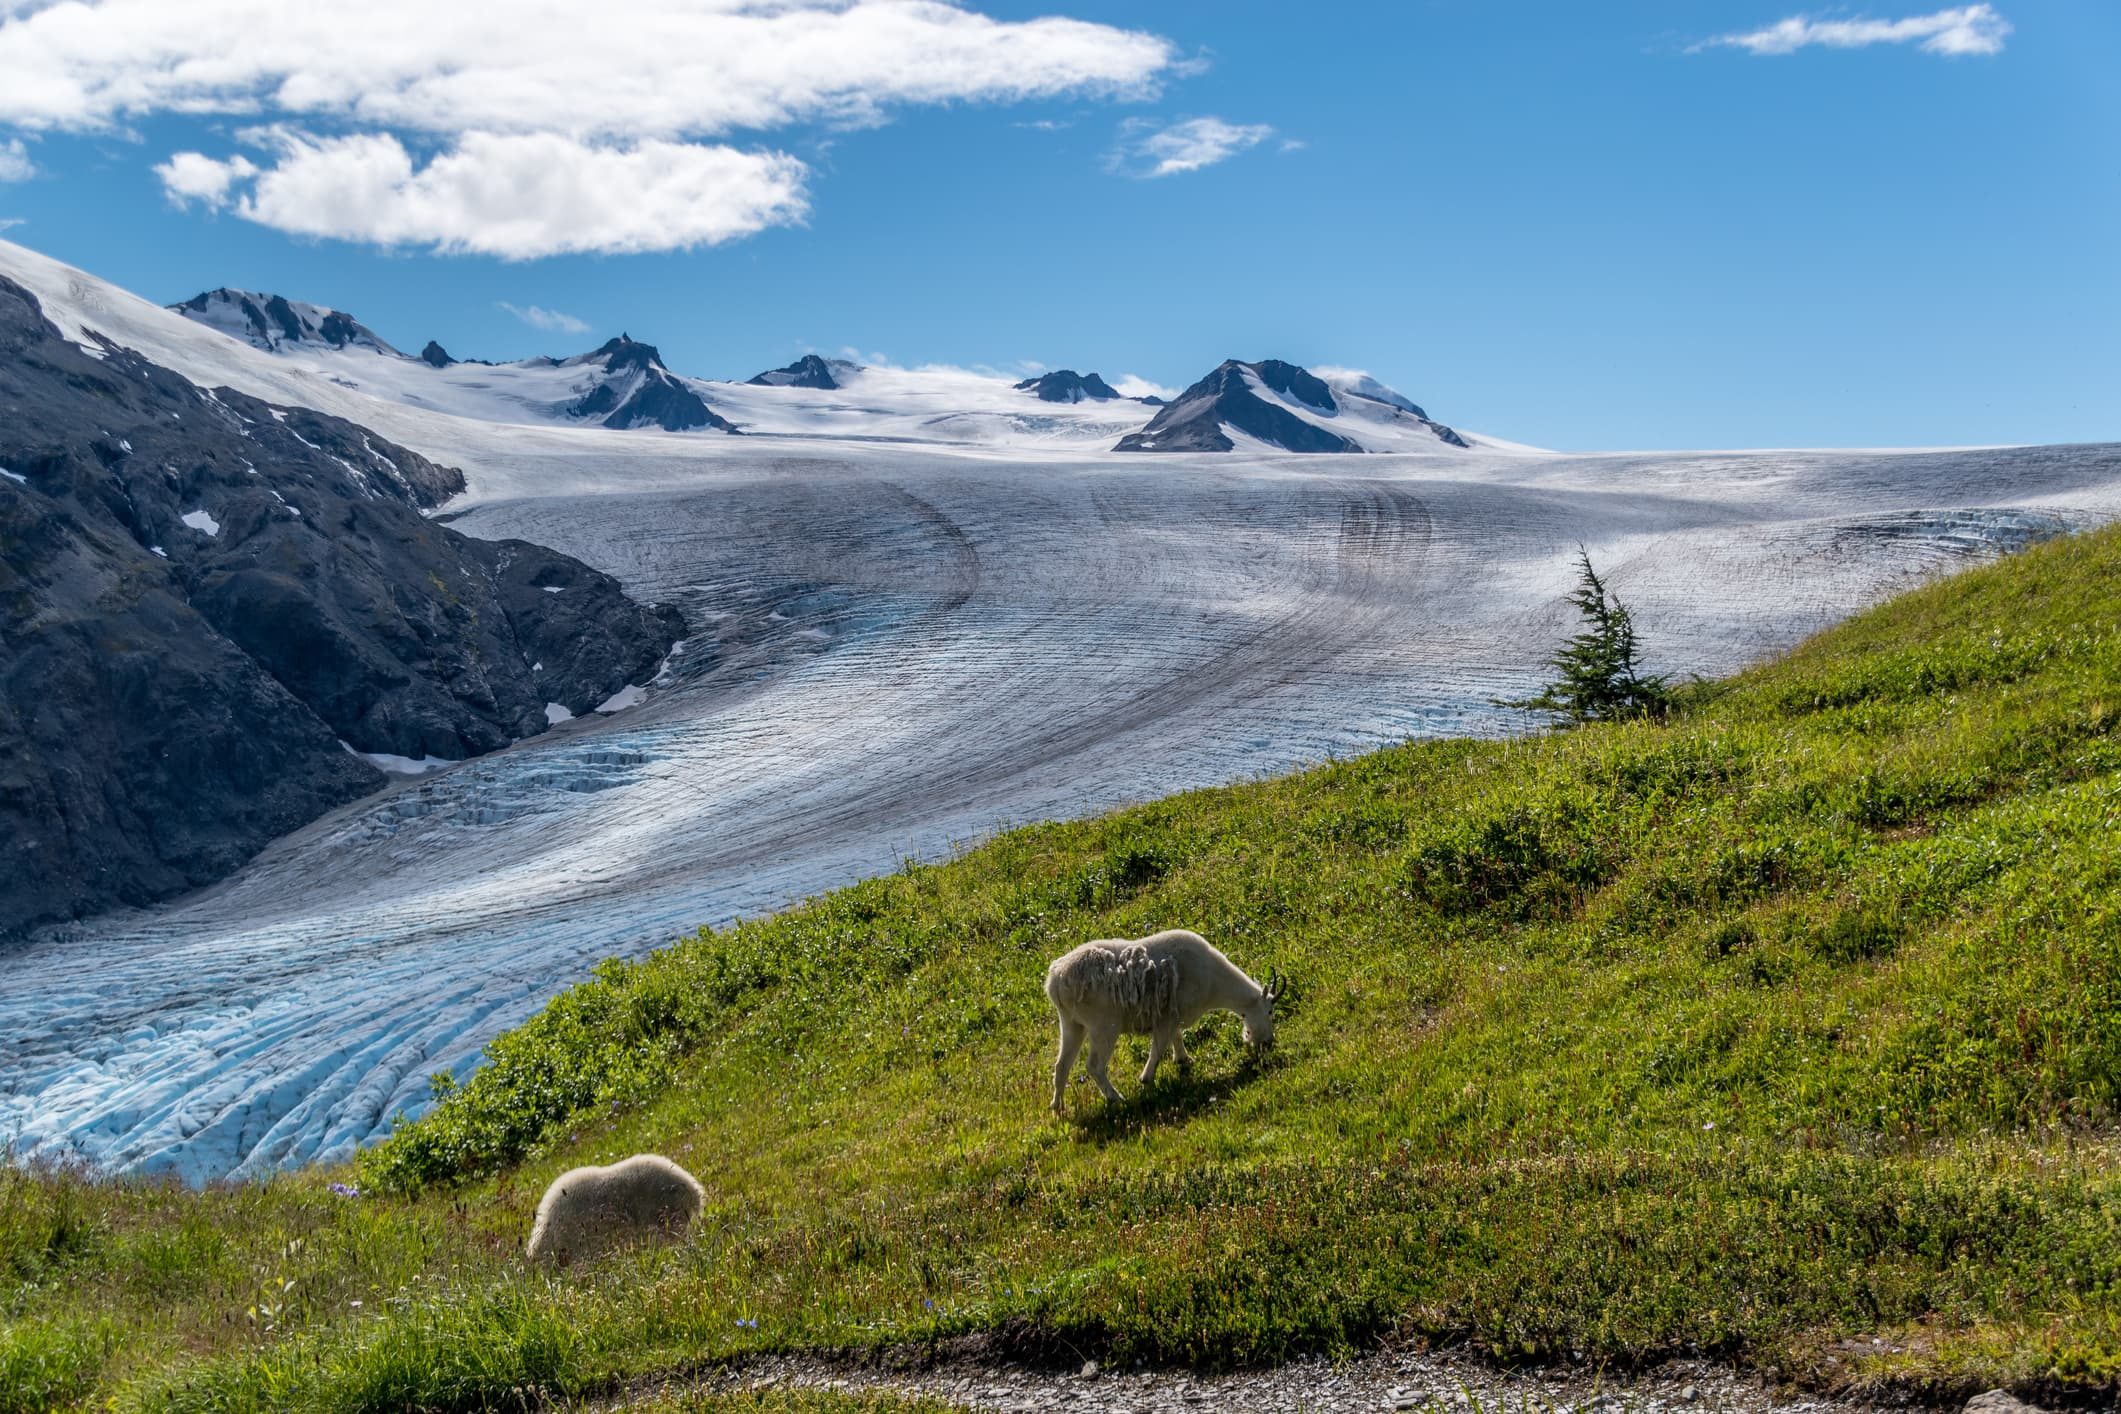 Mountain goats and glaciers in Alaska